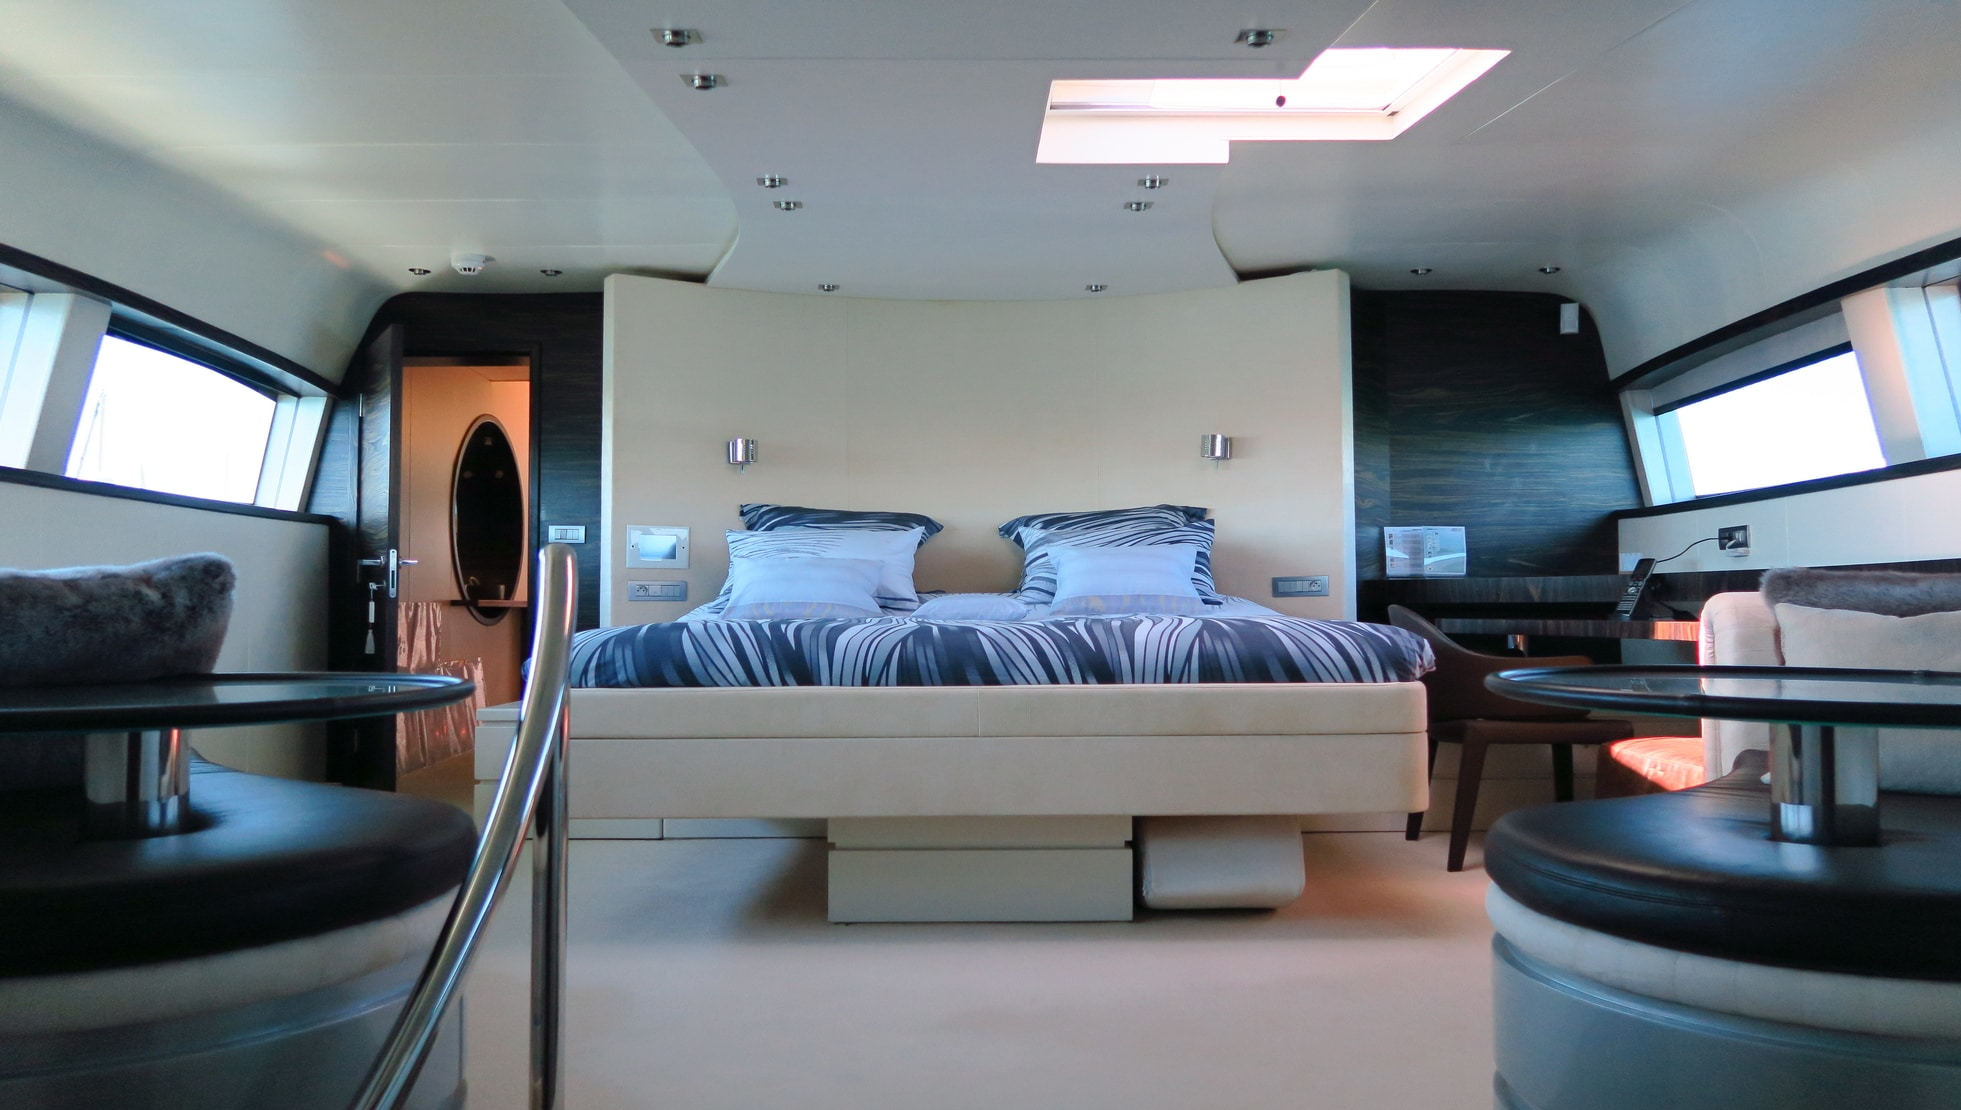 Master cabin on main deck